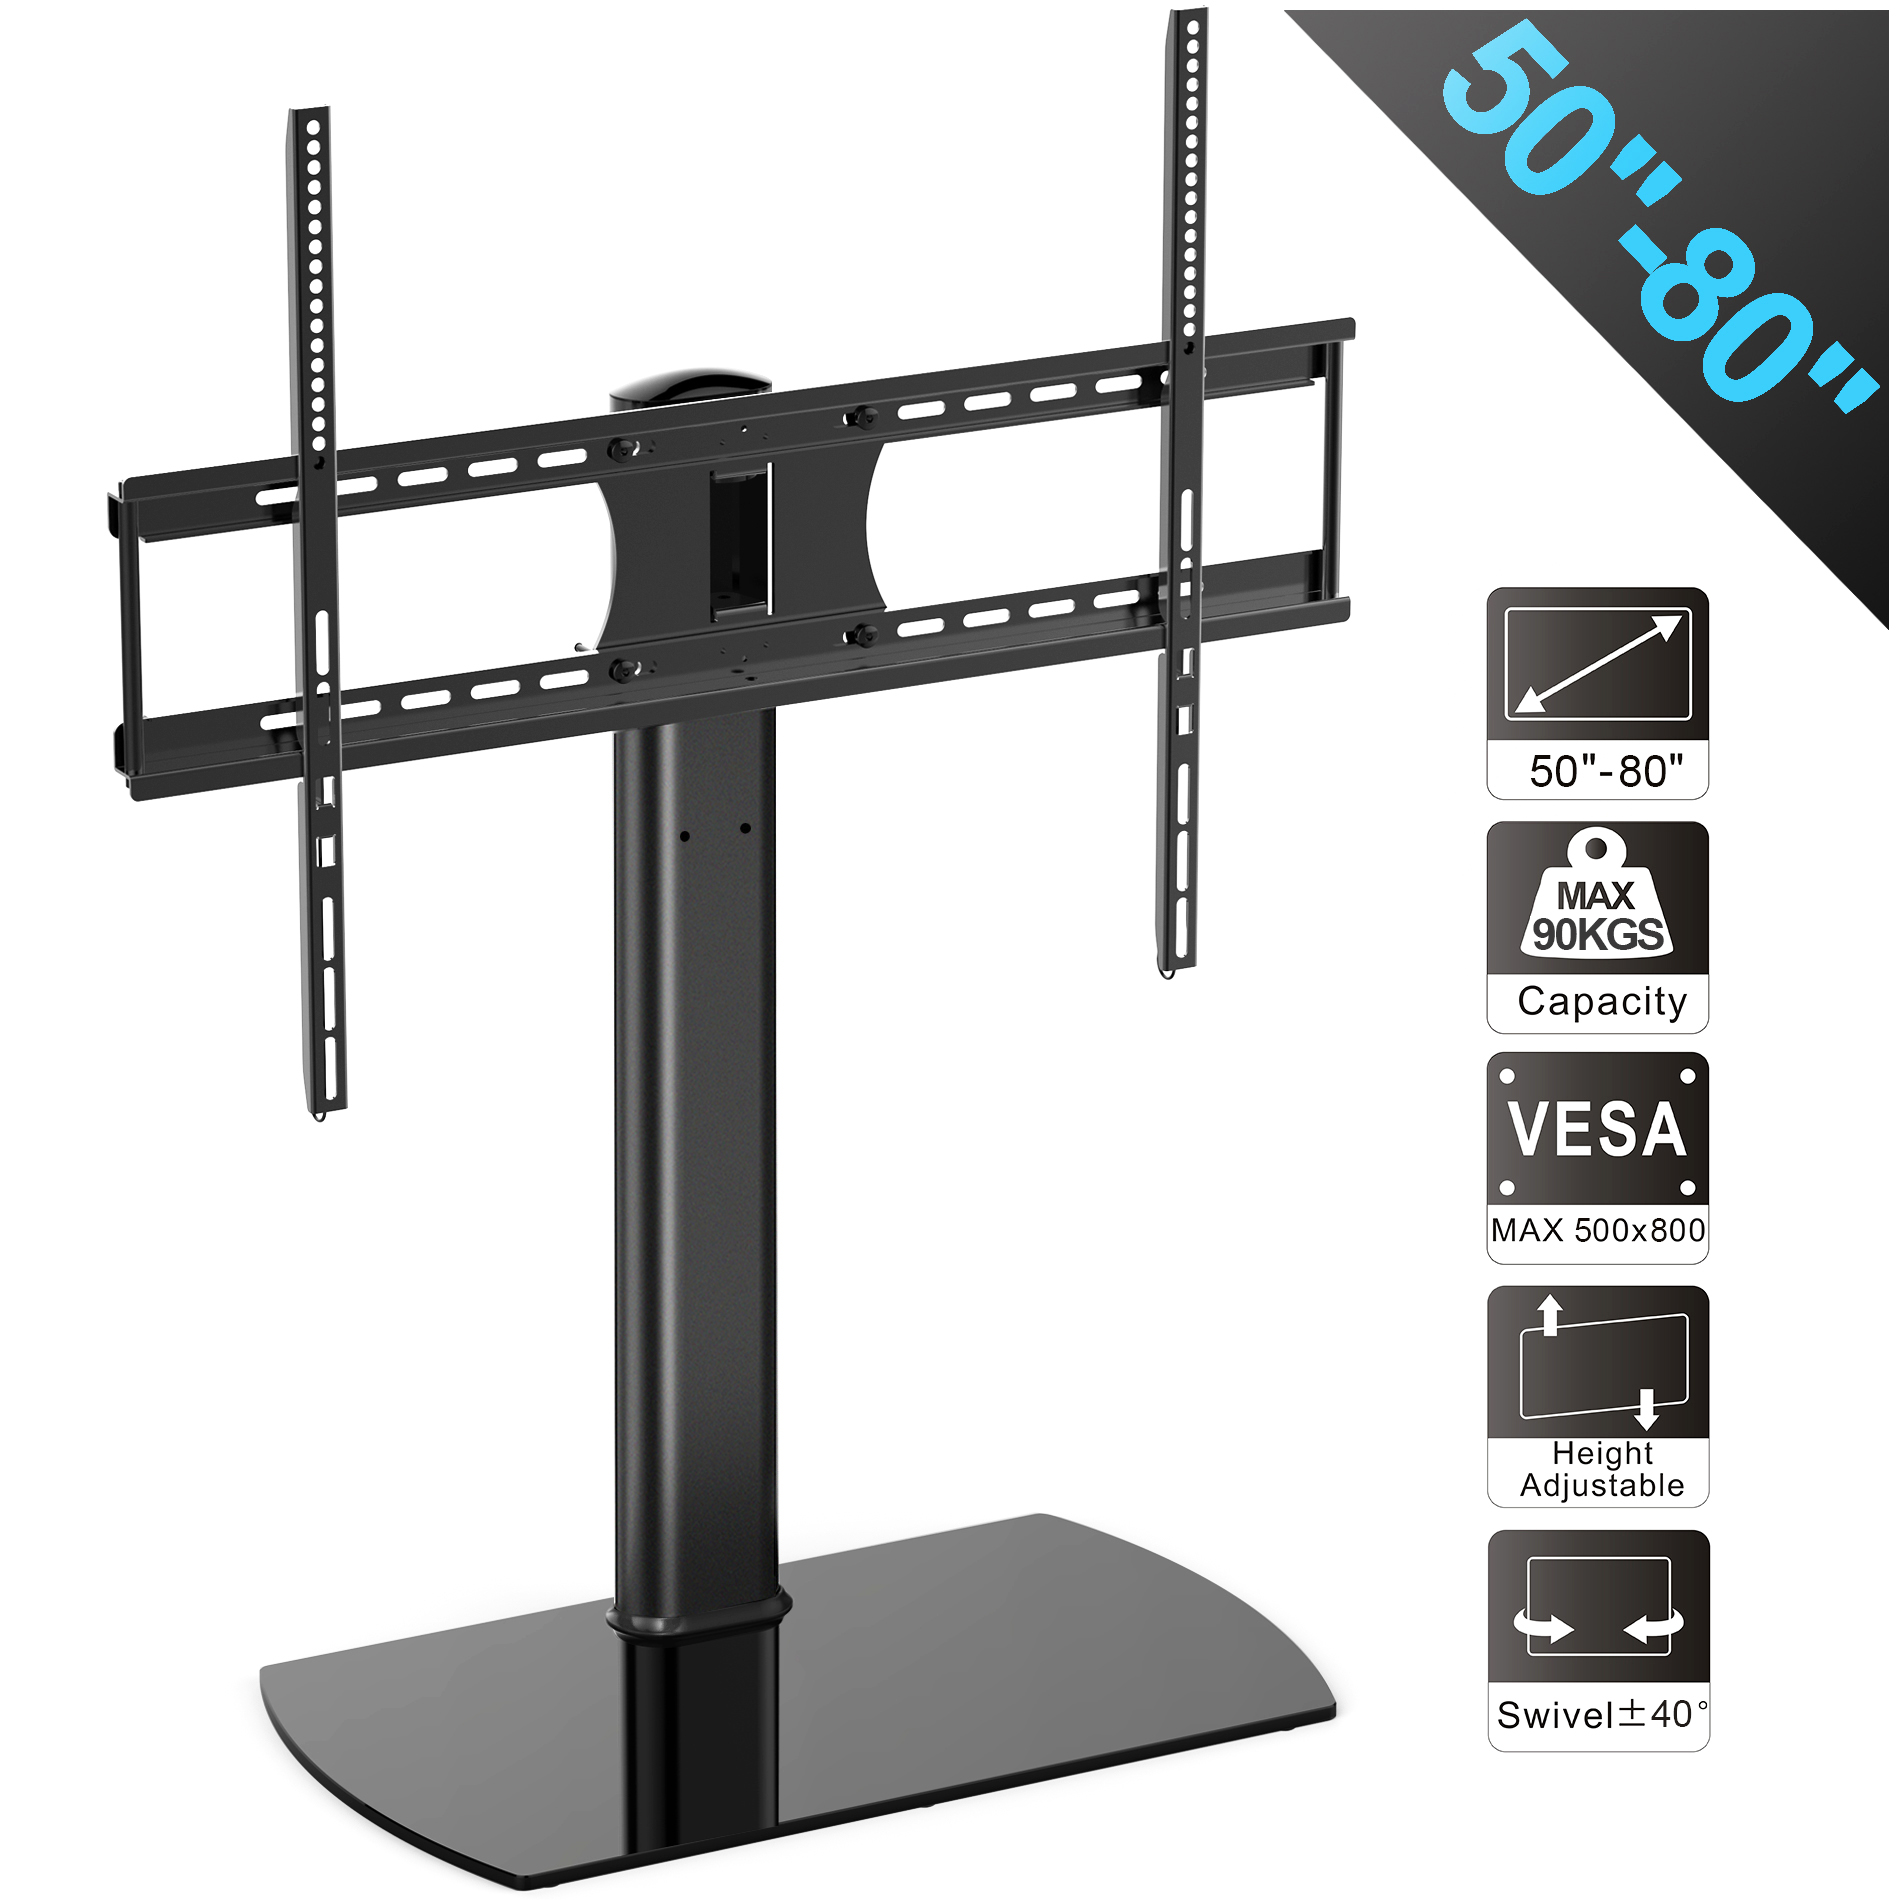 FITUEYES Universal TV Stand Swivel Tabletop TV Stand with Mount for 50 to 80 inch Flat screen Tvs TT107004GB